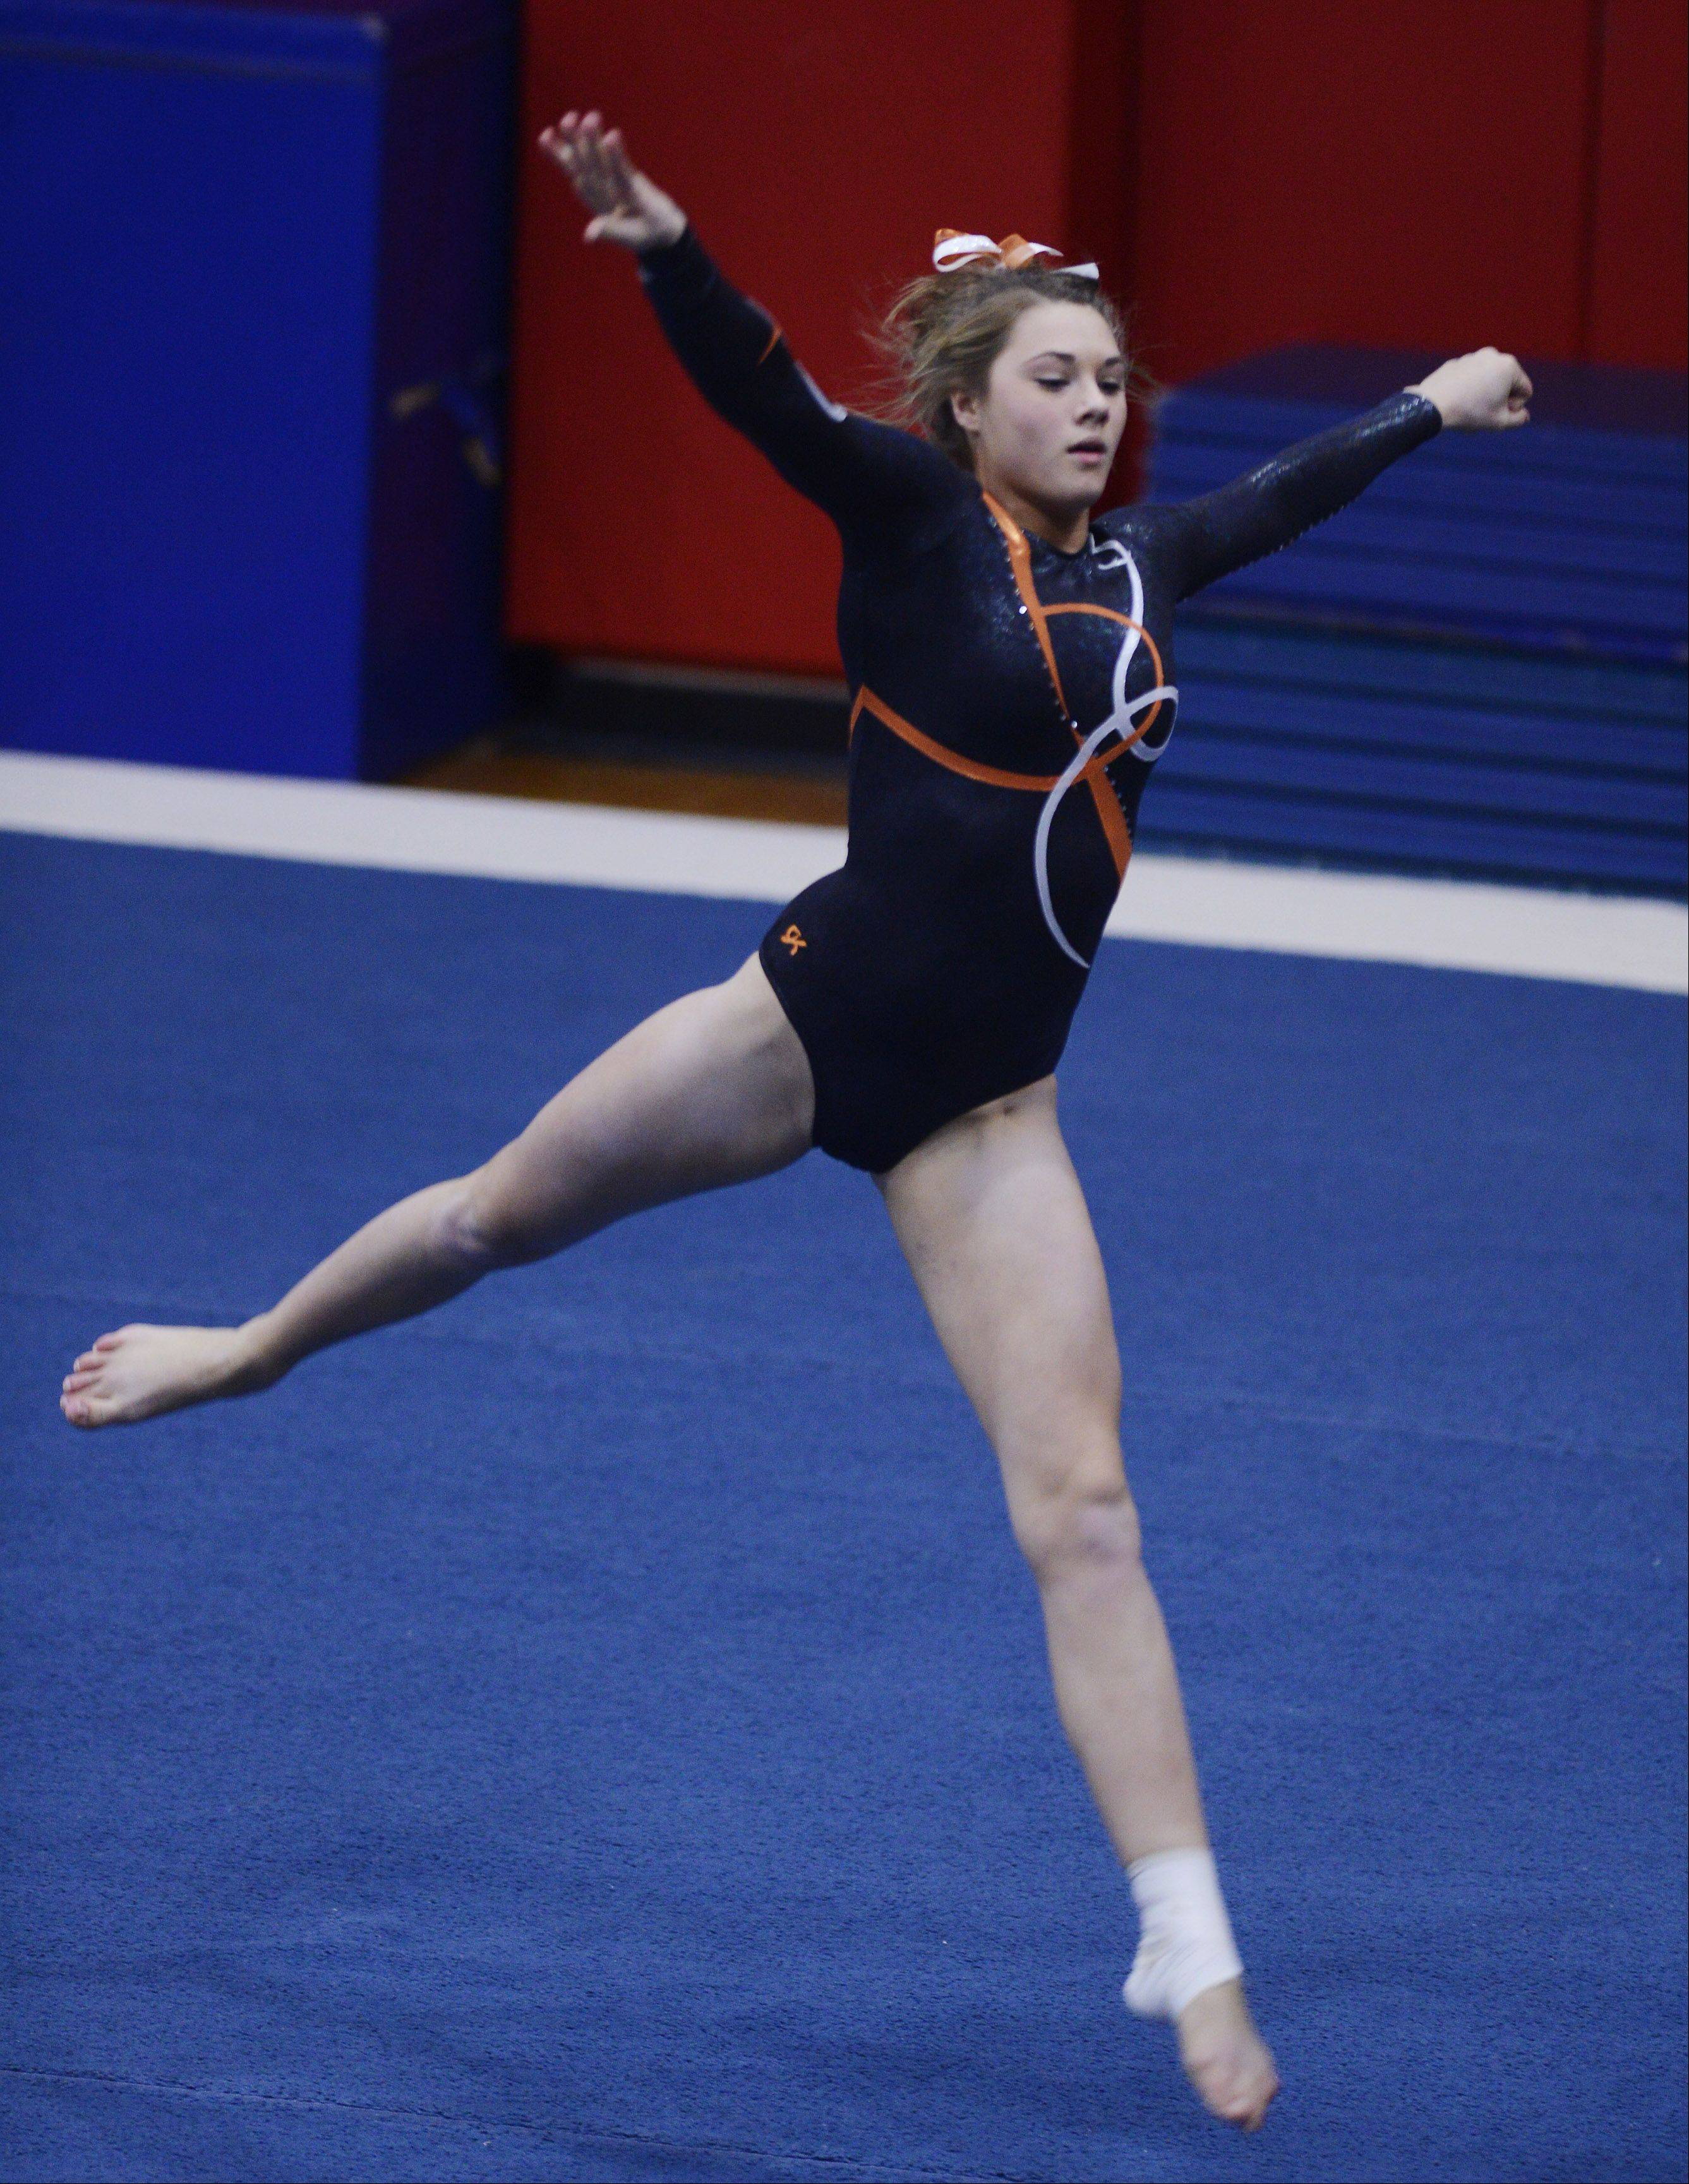 Hersey's Annie Johnson competes on the floor exercise during Wednesday's gymnastics regional at Palatine.